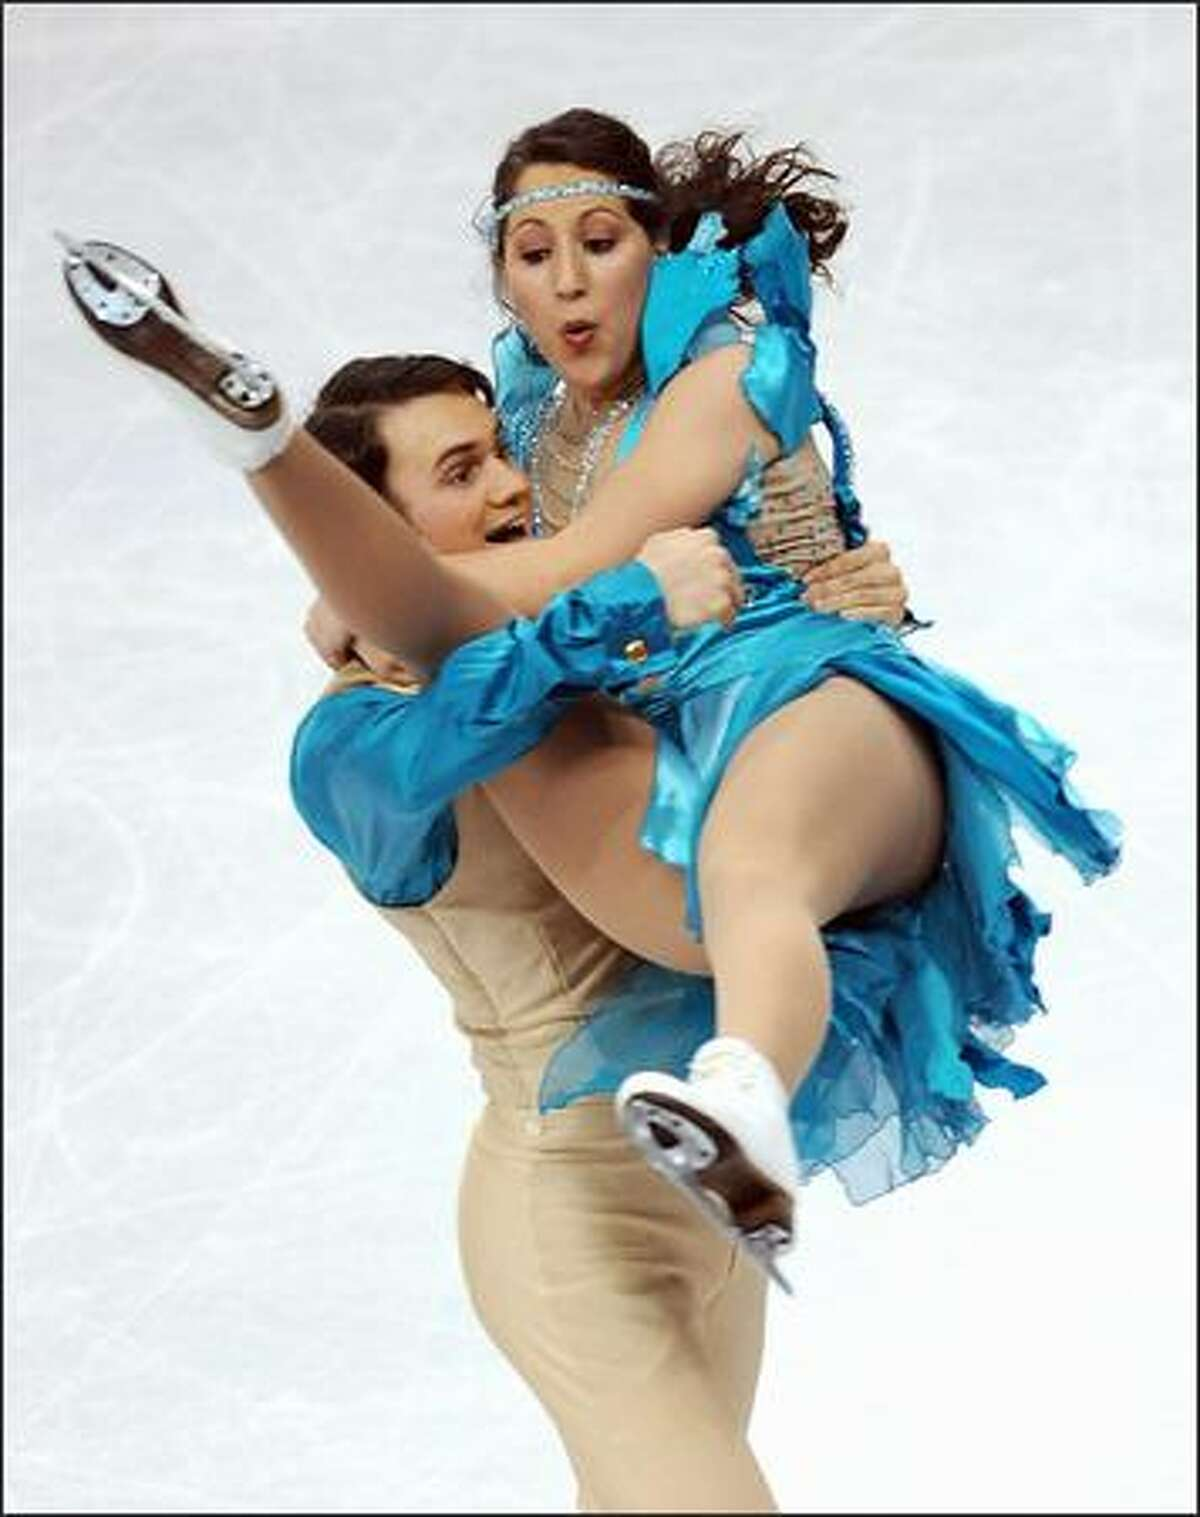 Nikki Georgiadis and Graham Hockley from Greece compete during the original dance event.